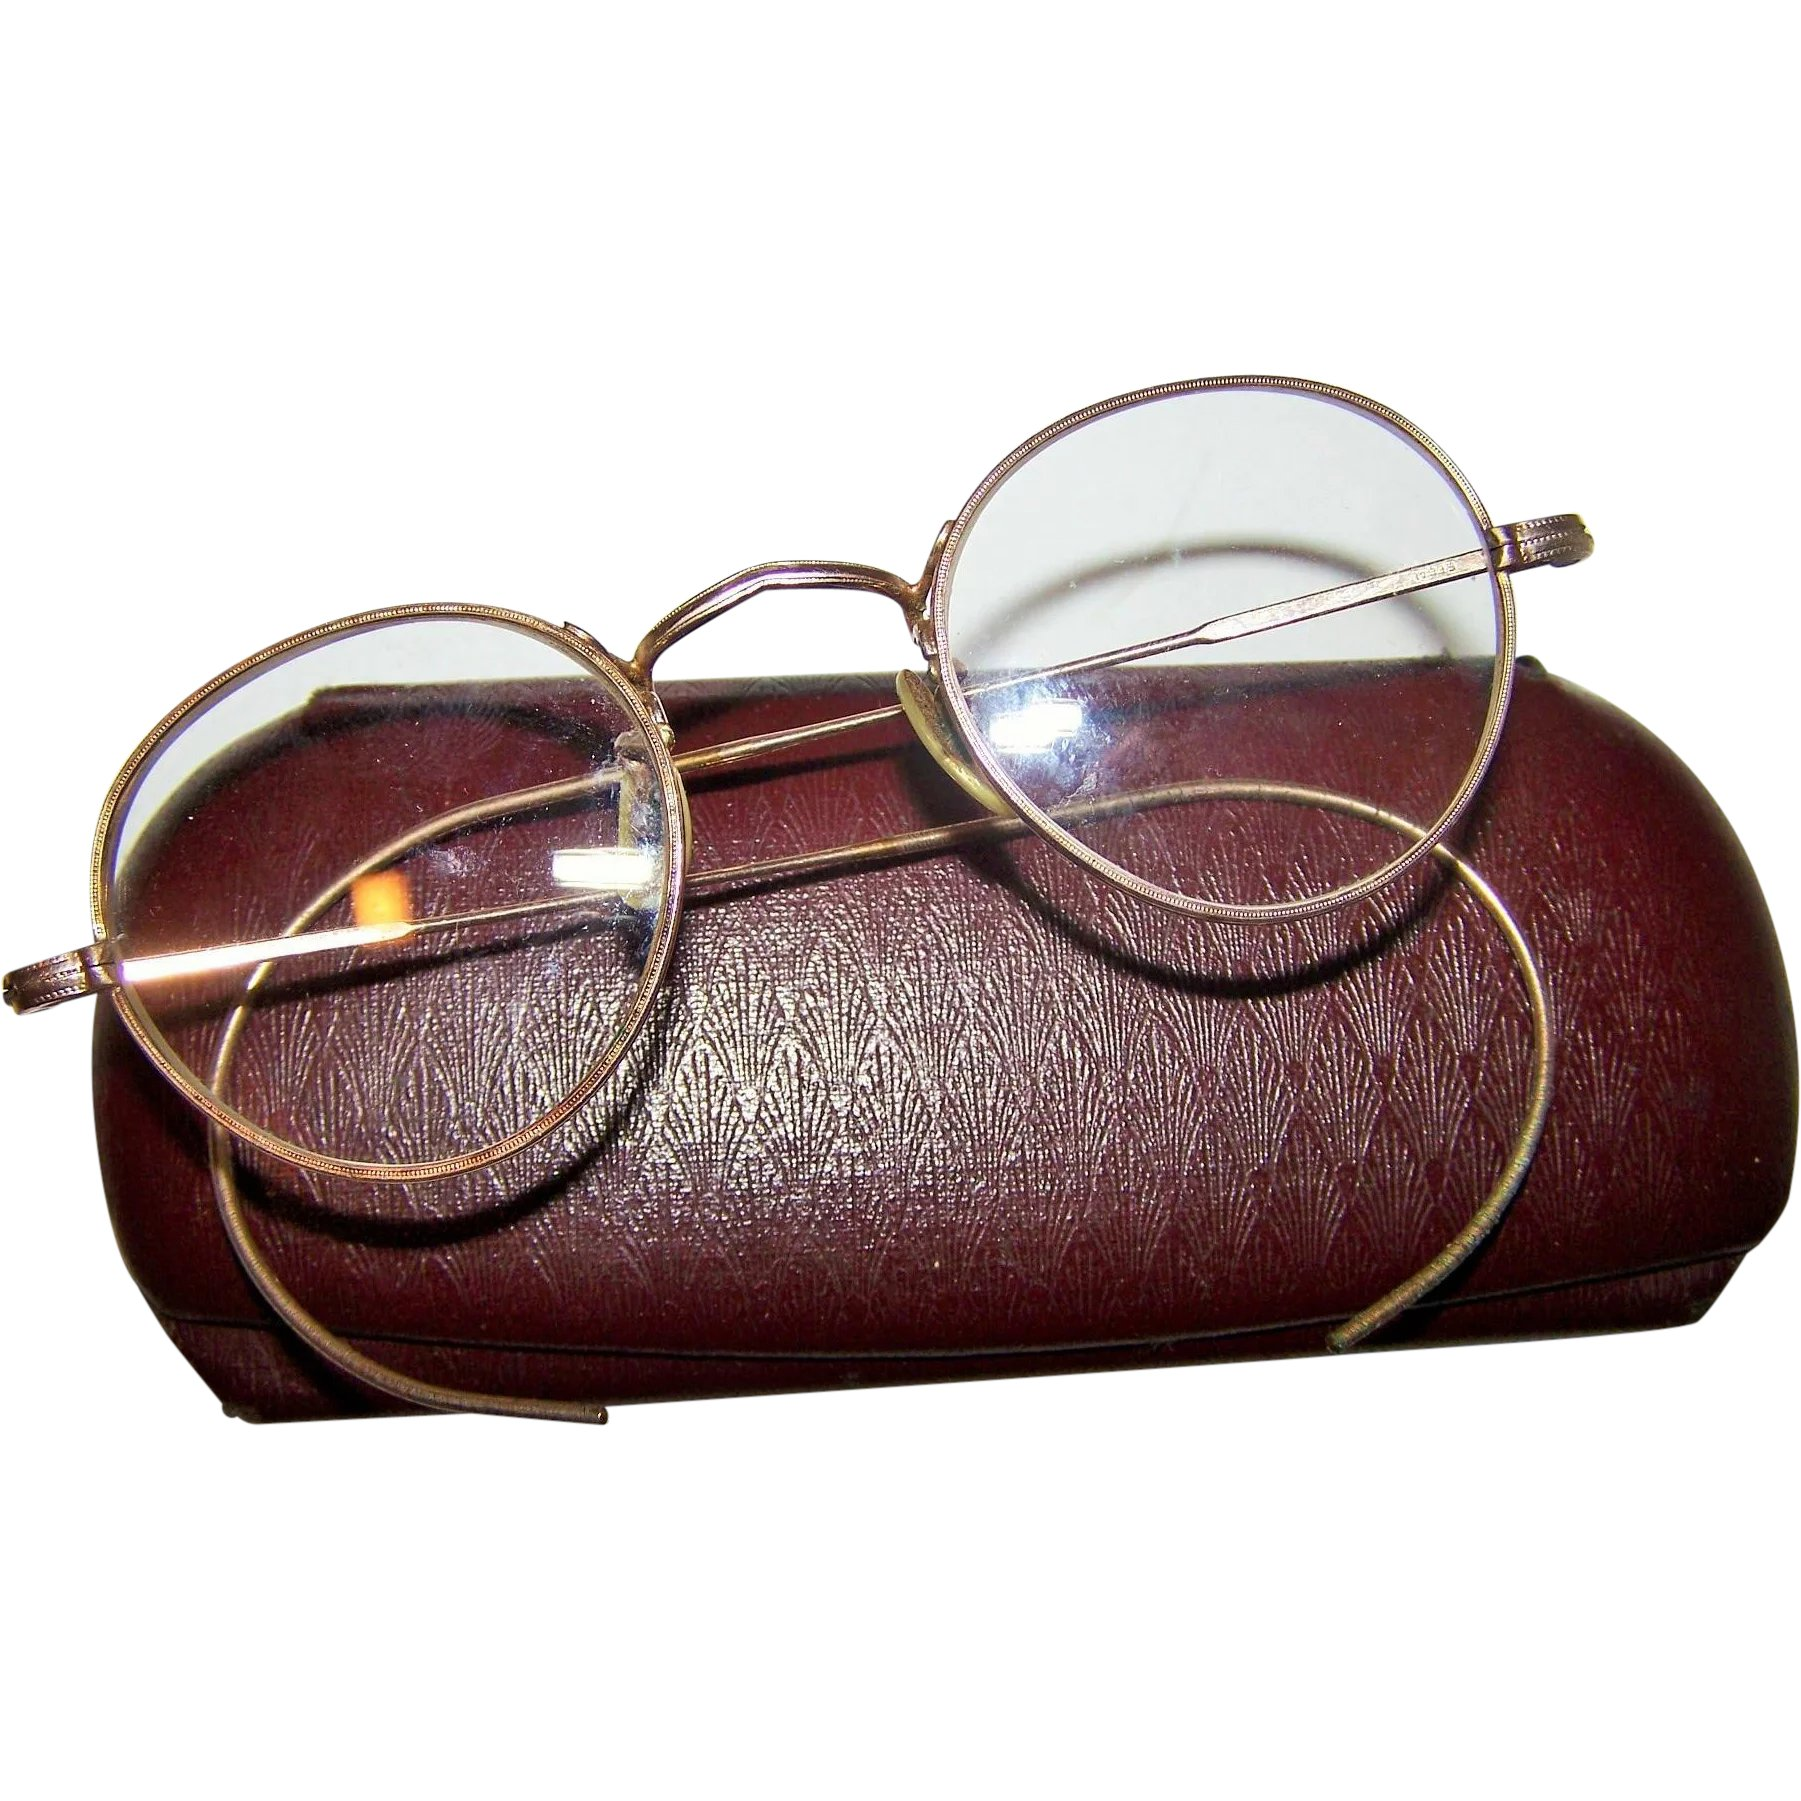 d9e29519ca0 Vintage Gold Plated Spectacles Glasses Eye Wear Regal Perfex   Victoria s  Purrrrfect Treasures